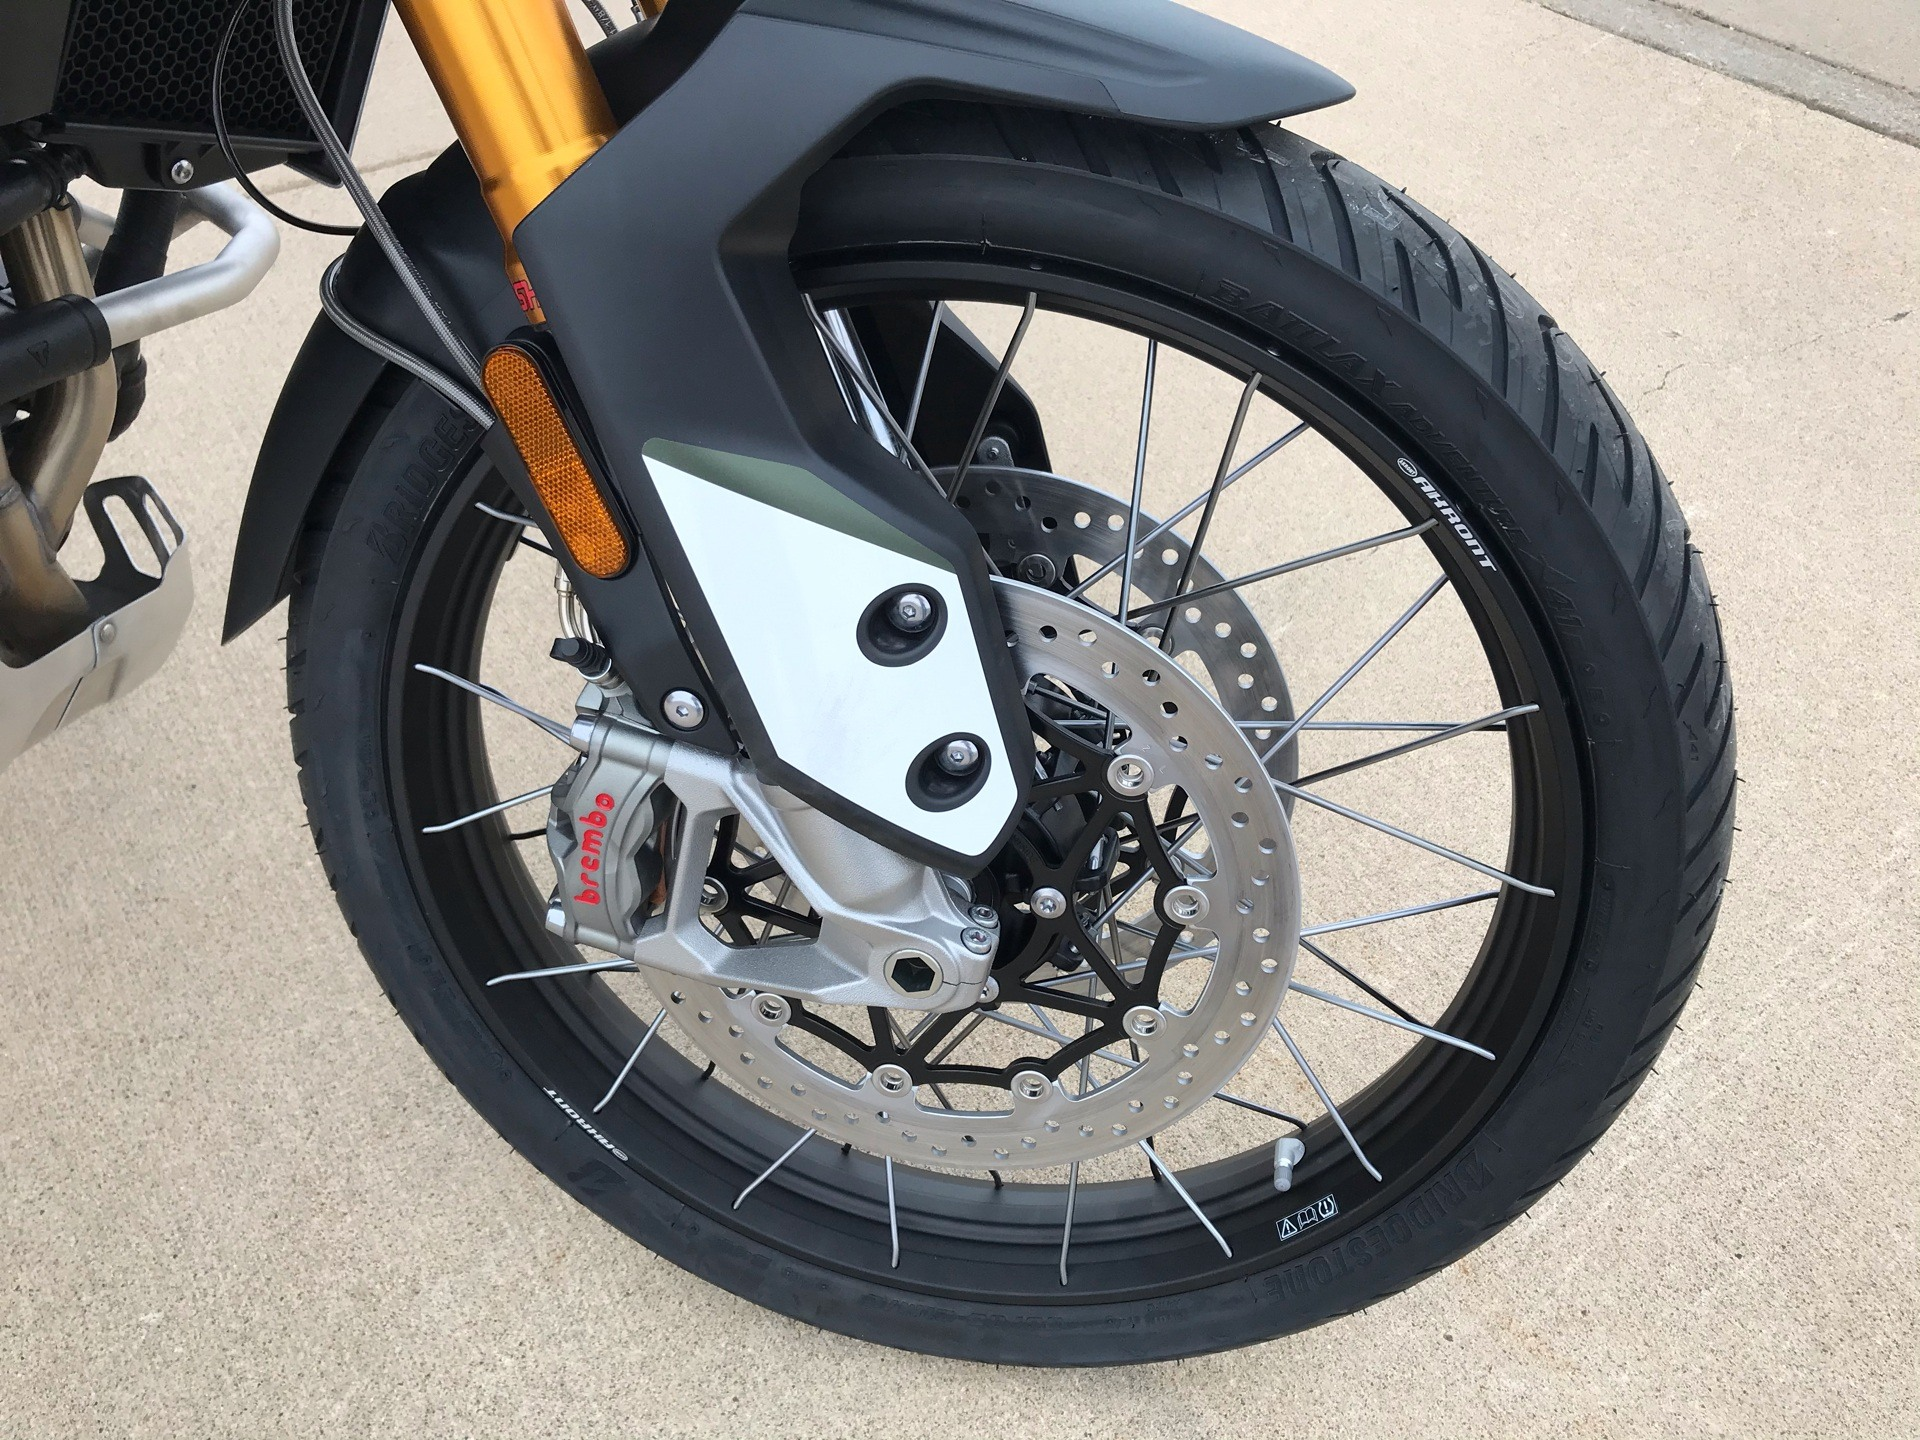 2020 Triumph Tiger 900 Rally Pro in Belle Plaine, Minnesota - Photo 11